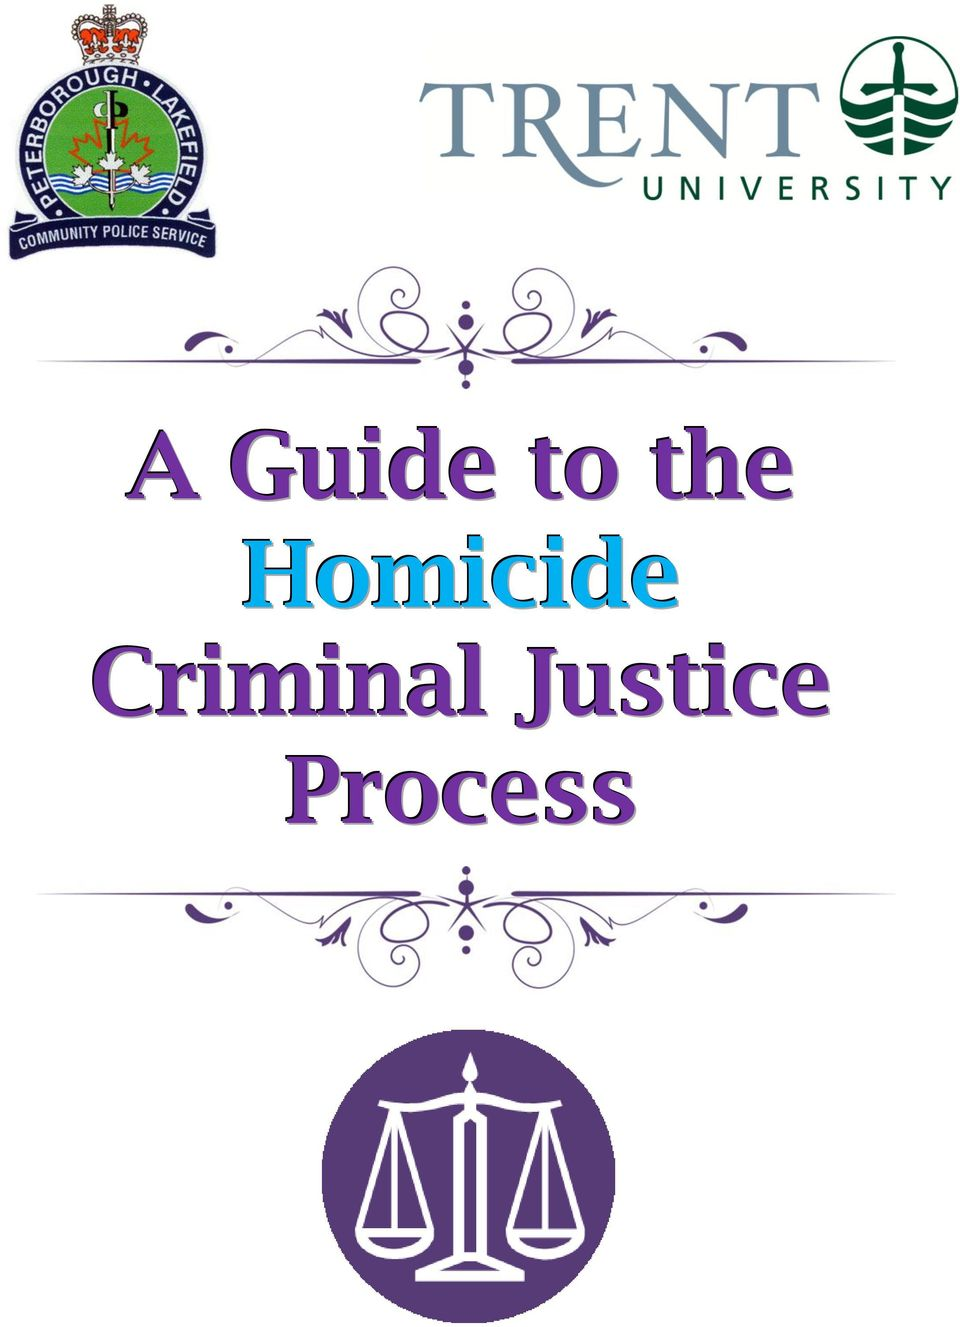 hight resolution of 2 p a g e 2 table of contents homicide case flowchart 3 overview of homicide trial 4 location of local court houses 5 general courtroom diagram 6